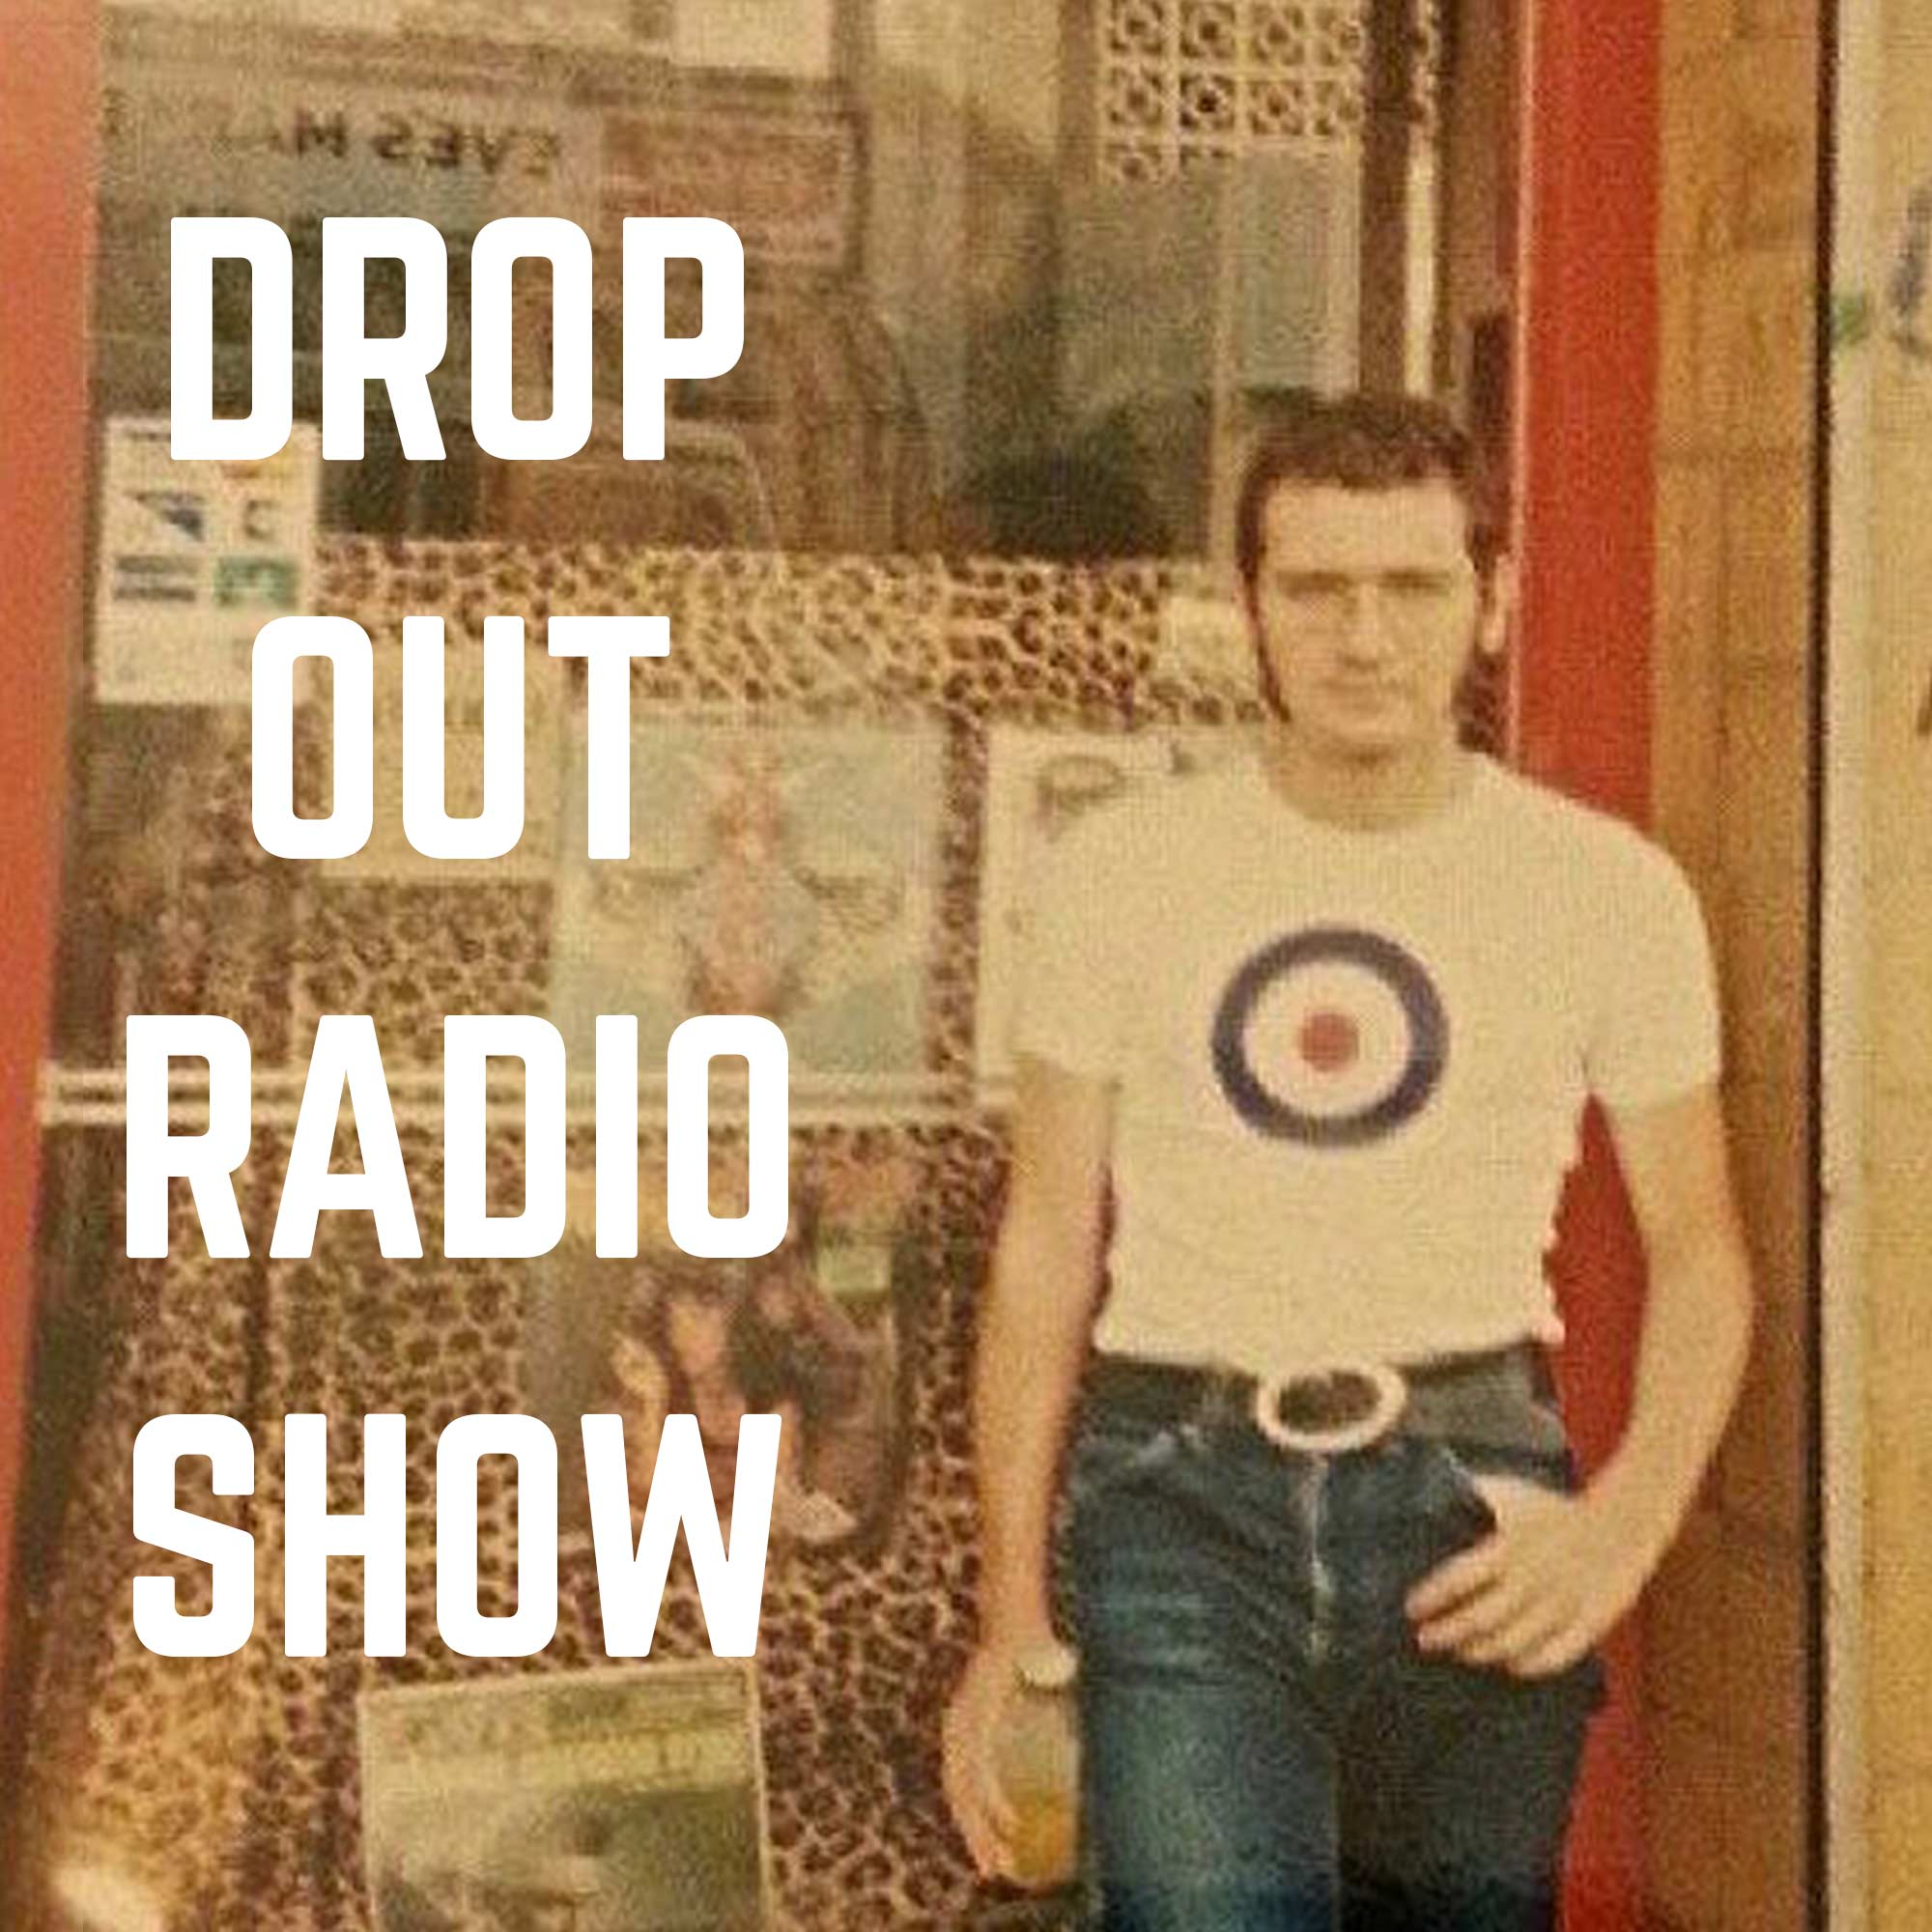 Drop out Radio Show